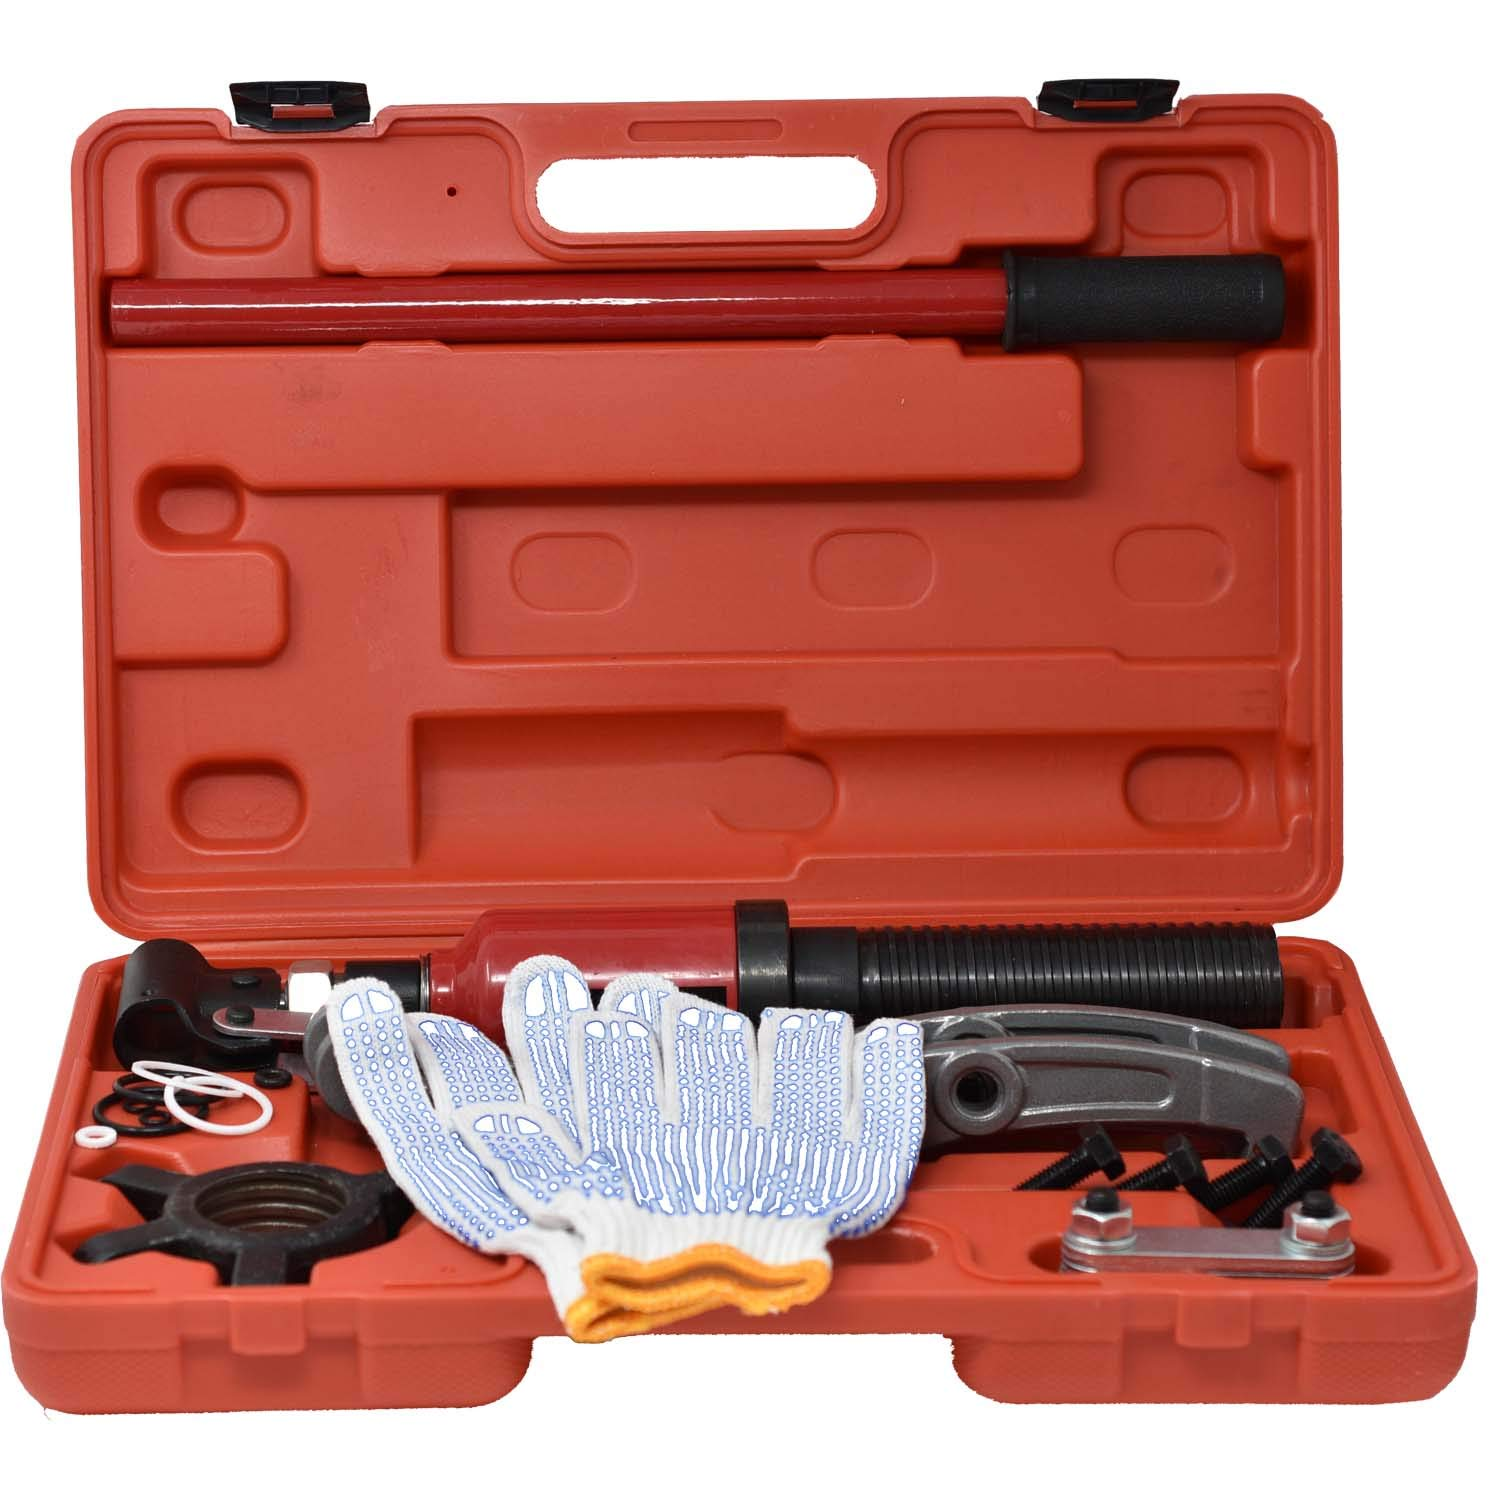 5 Ton 3 Jaw Hydraulic Gear Puller, Wheel Bearing Hub Removal Tool with Work Gloves and Storage Box by Chromex Tools (Image #2)